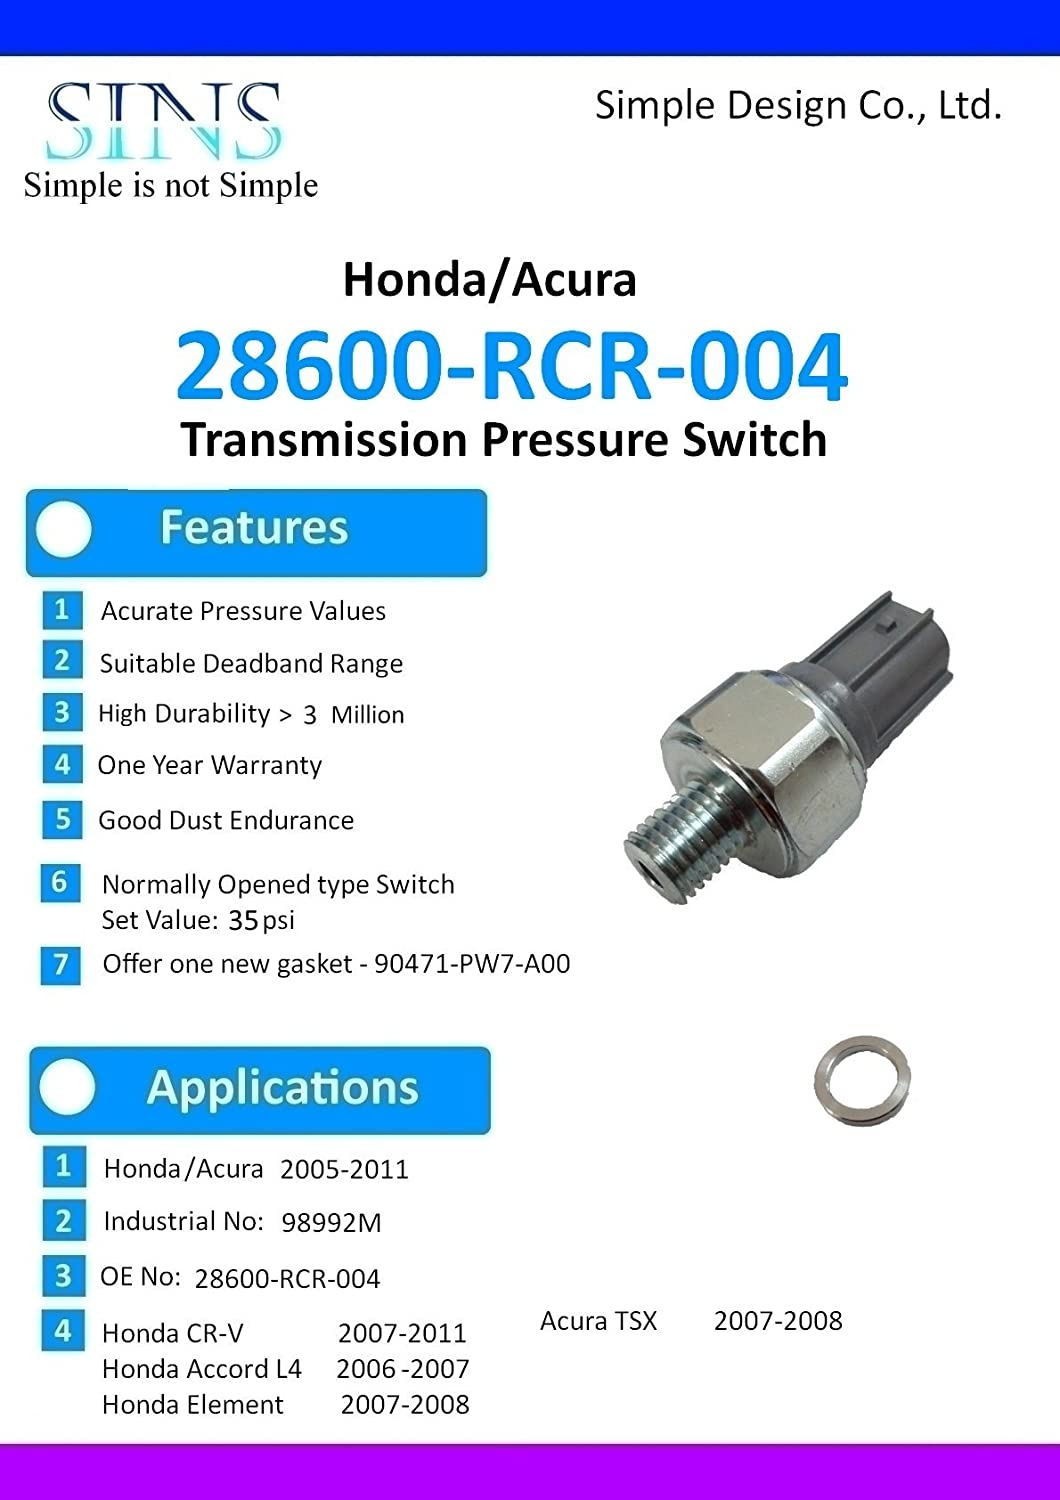 Accord CR-V TSX Transmission Pressure Switch 28600-RCR-004 SINS